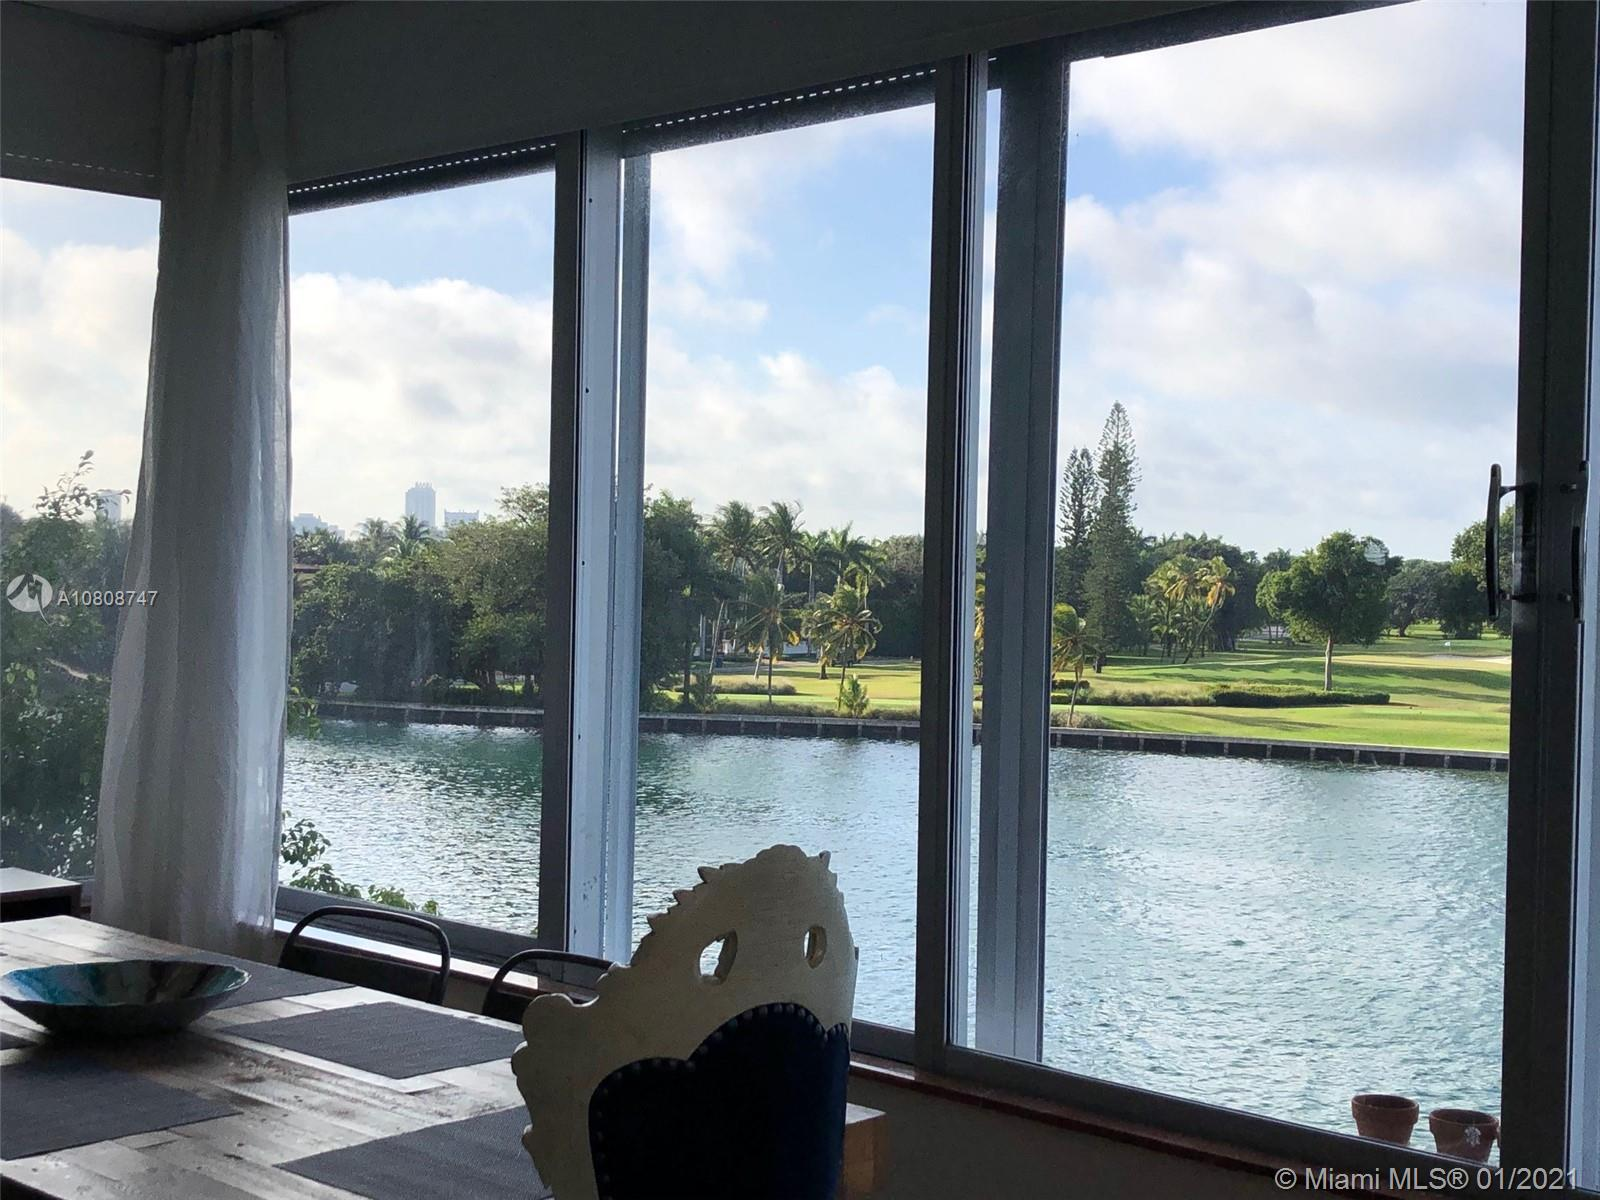 Breathtaking views of the golf court and spectacular sunsets!! Large 2-bedroom condo converted to 3 at the lowest price per sf in beautiful Bay Harbor Islands. 2,200 sf on the water with direct water views overlooking Indian Creek (with the most amazing sunsets)! Super low maintenance in a well-run boutique condominium. Two apartments per floor (8 in total) - and only one and a half blocks to Ruth K. Broad School - A rated public school. No rentals allowed - quiet and family oriented building. Call Mara for showings!